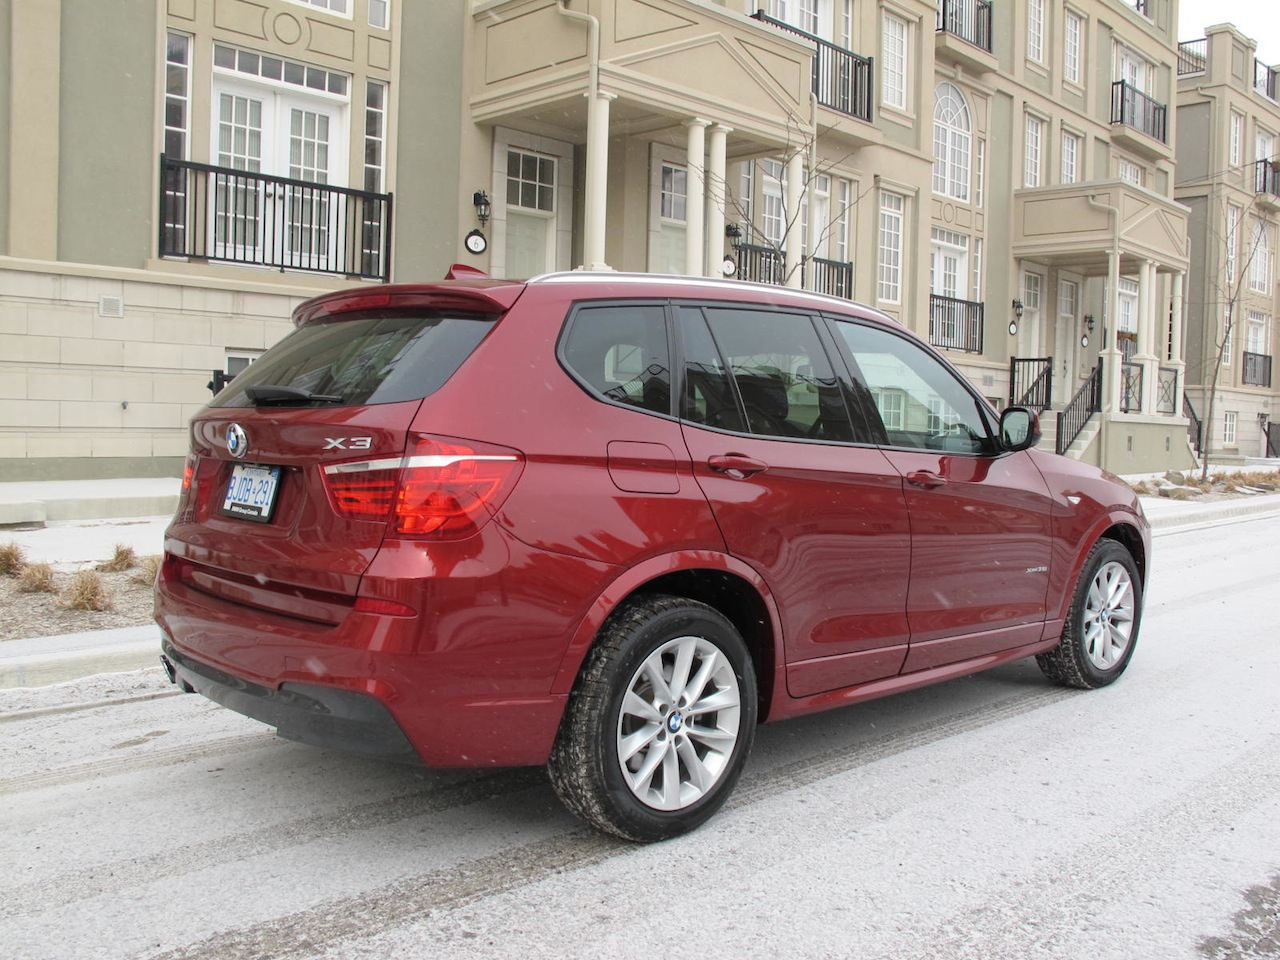 2013 bmw x3 xdrive35i cars photos test drives and reviews canadian auto review. Black Bedroom Furniture Sets. Home Design Ideas